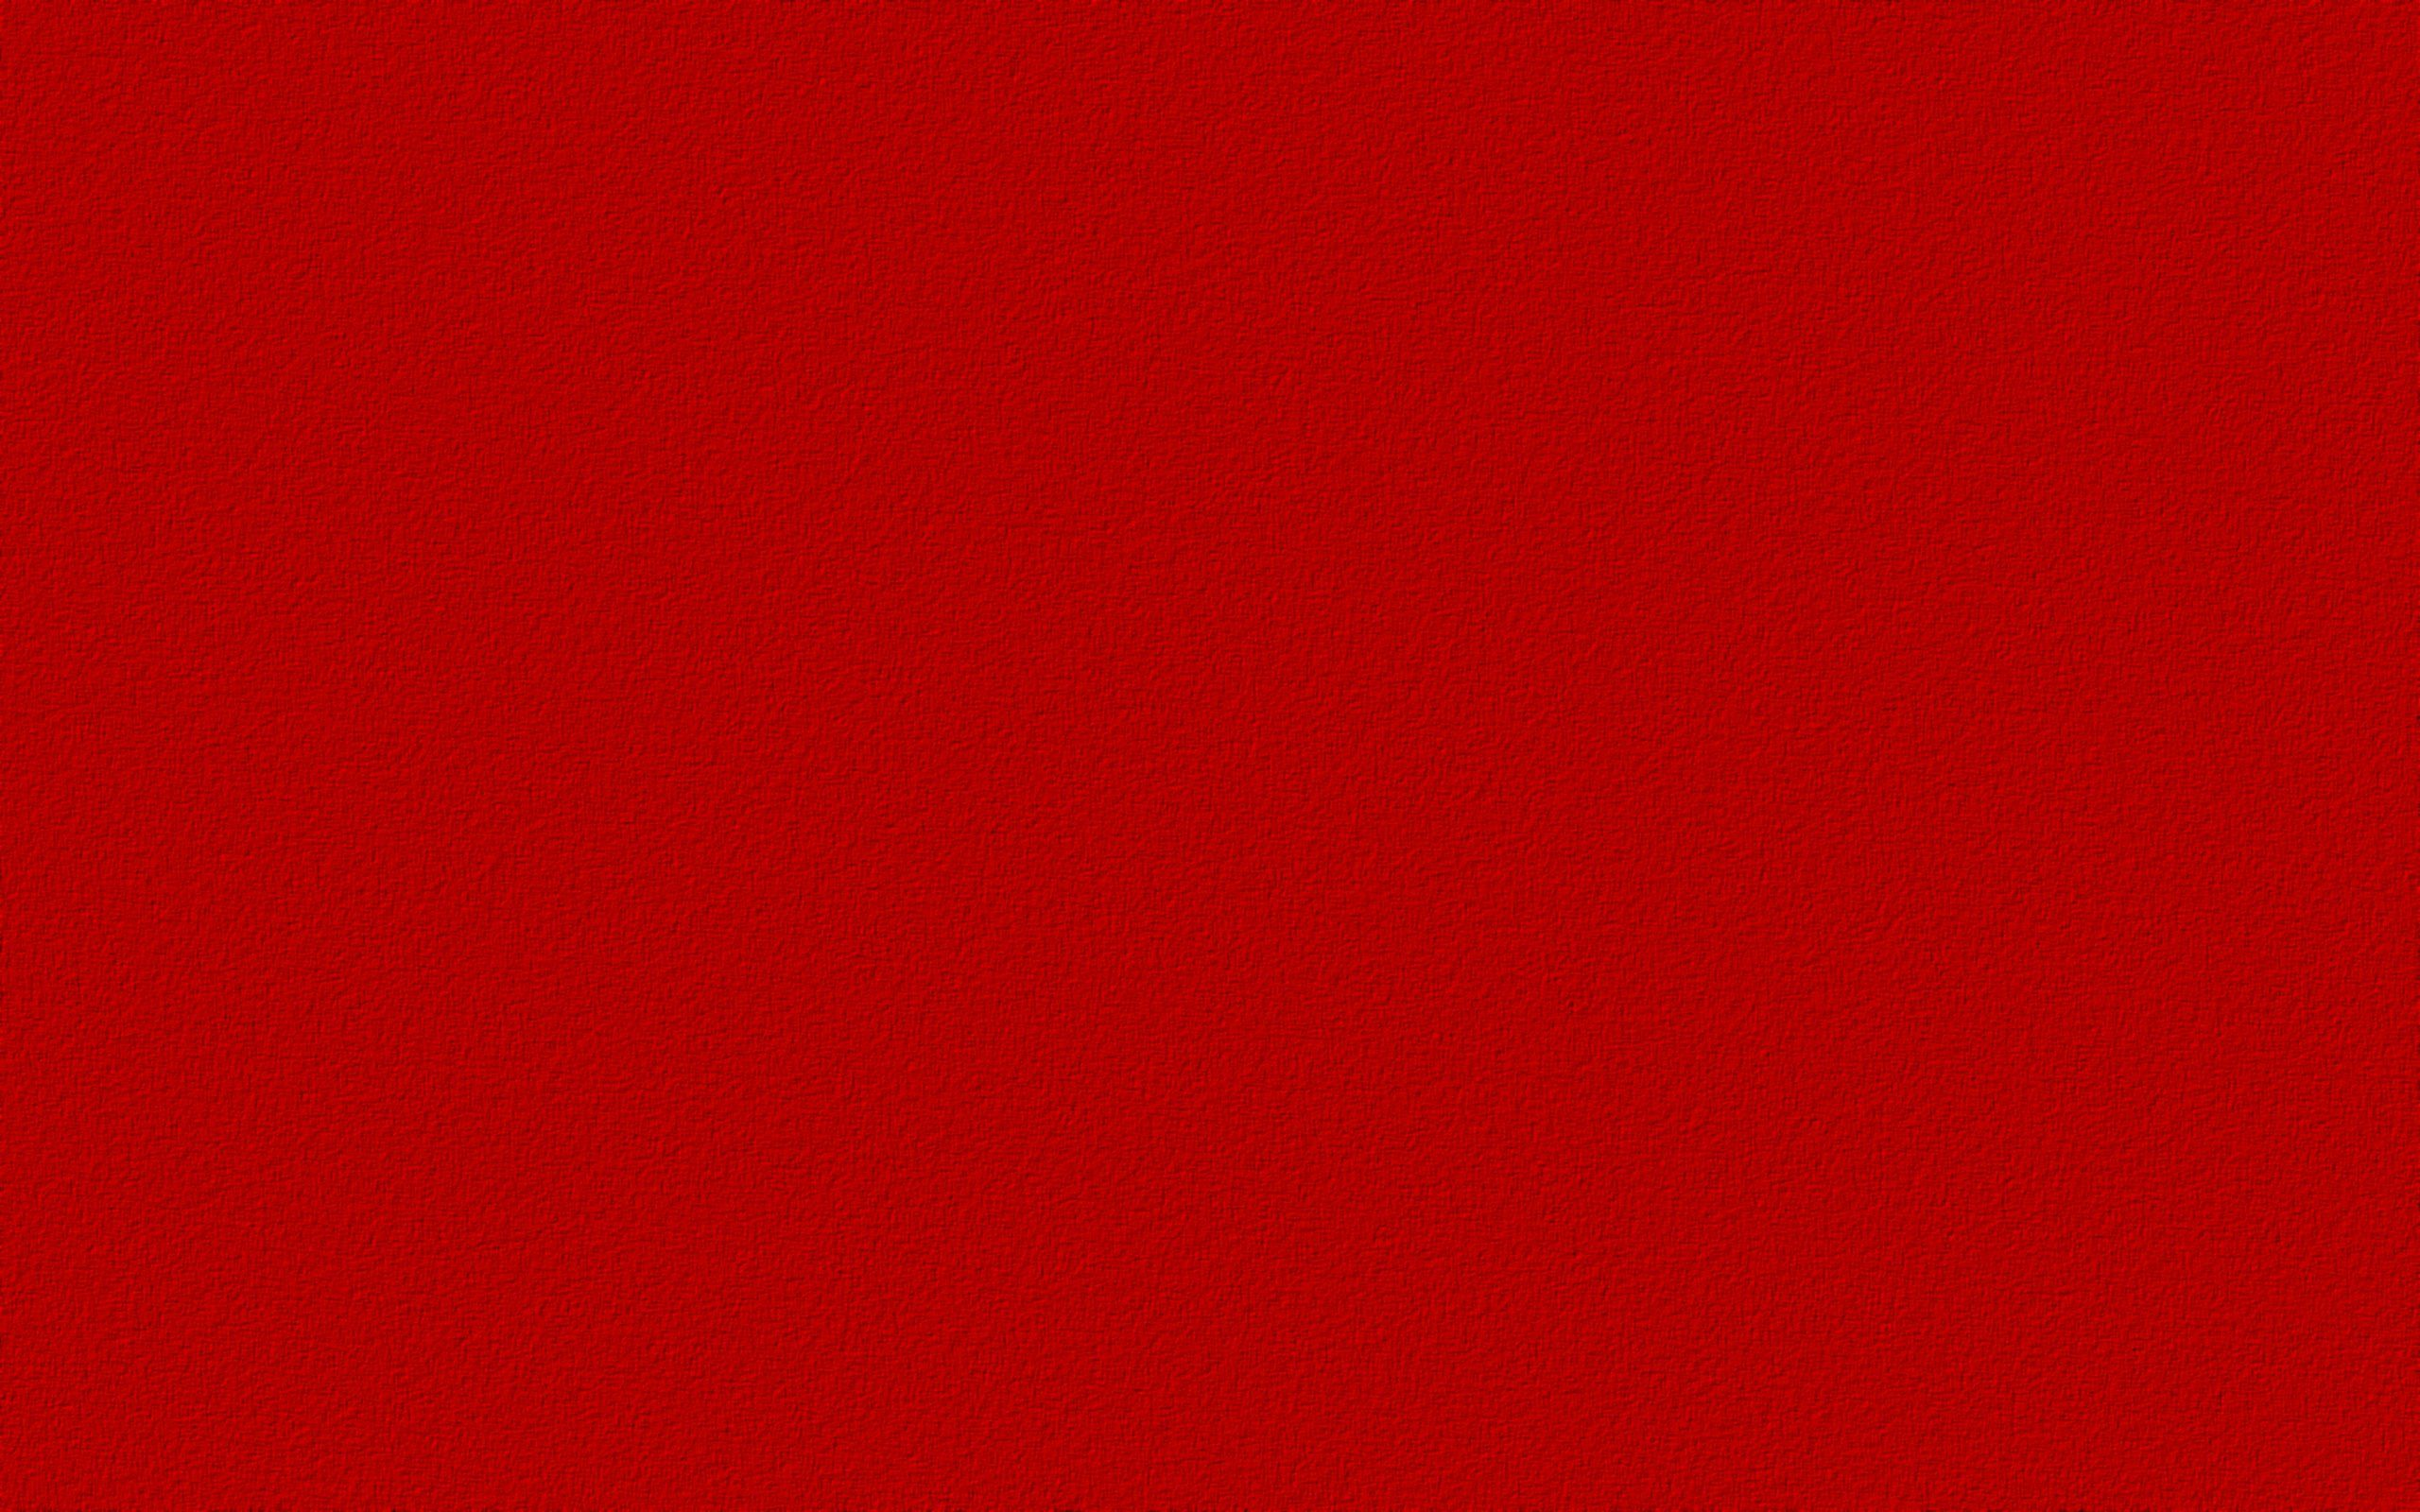 Red Wallpaper Background Solid Color Backgrounds Hex Colors Pantone Color